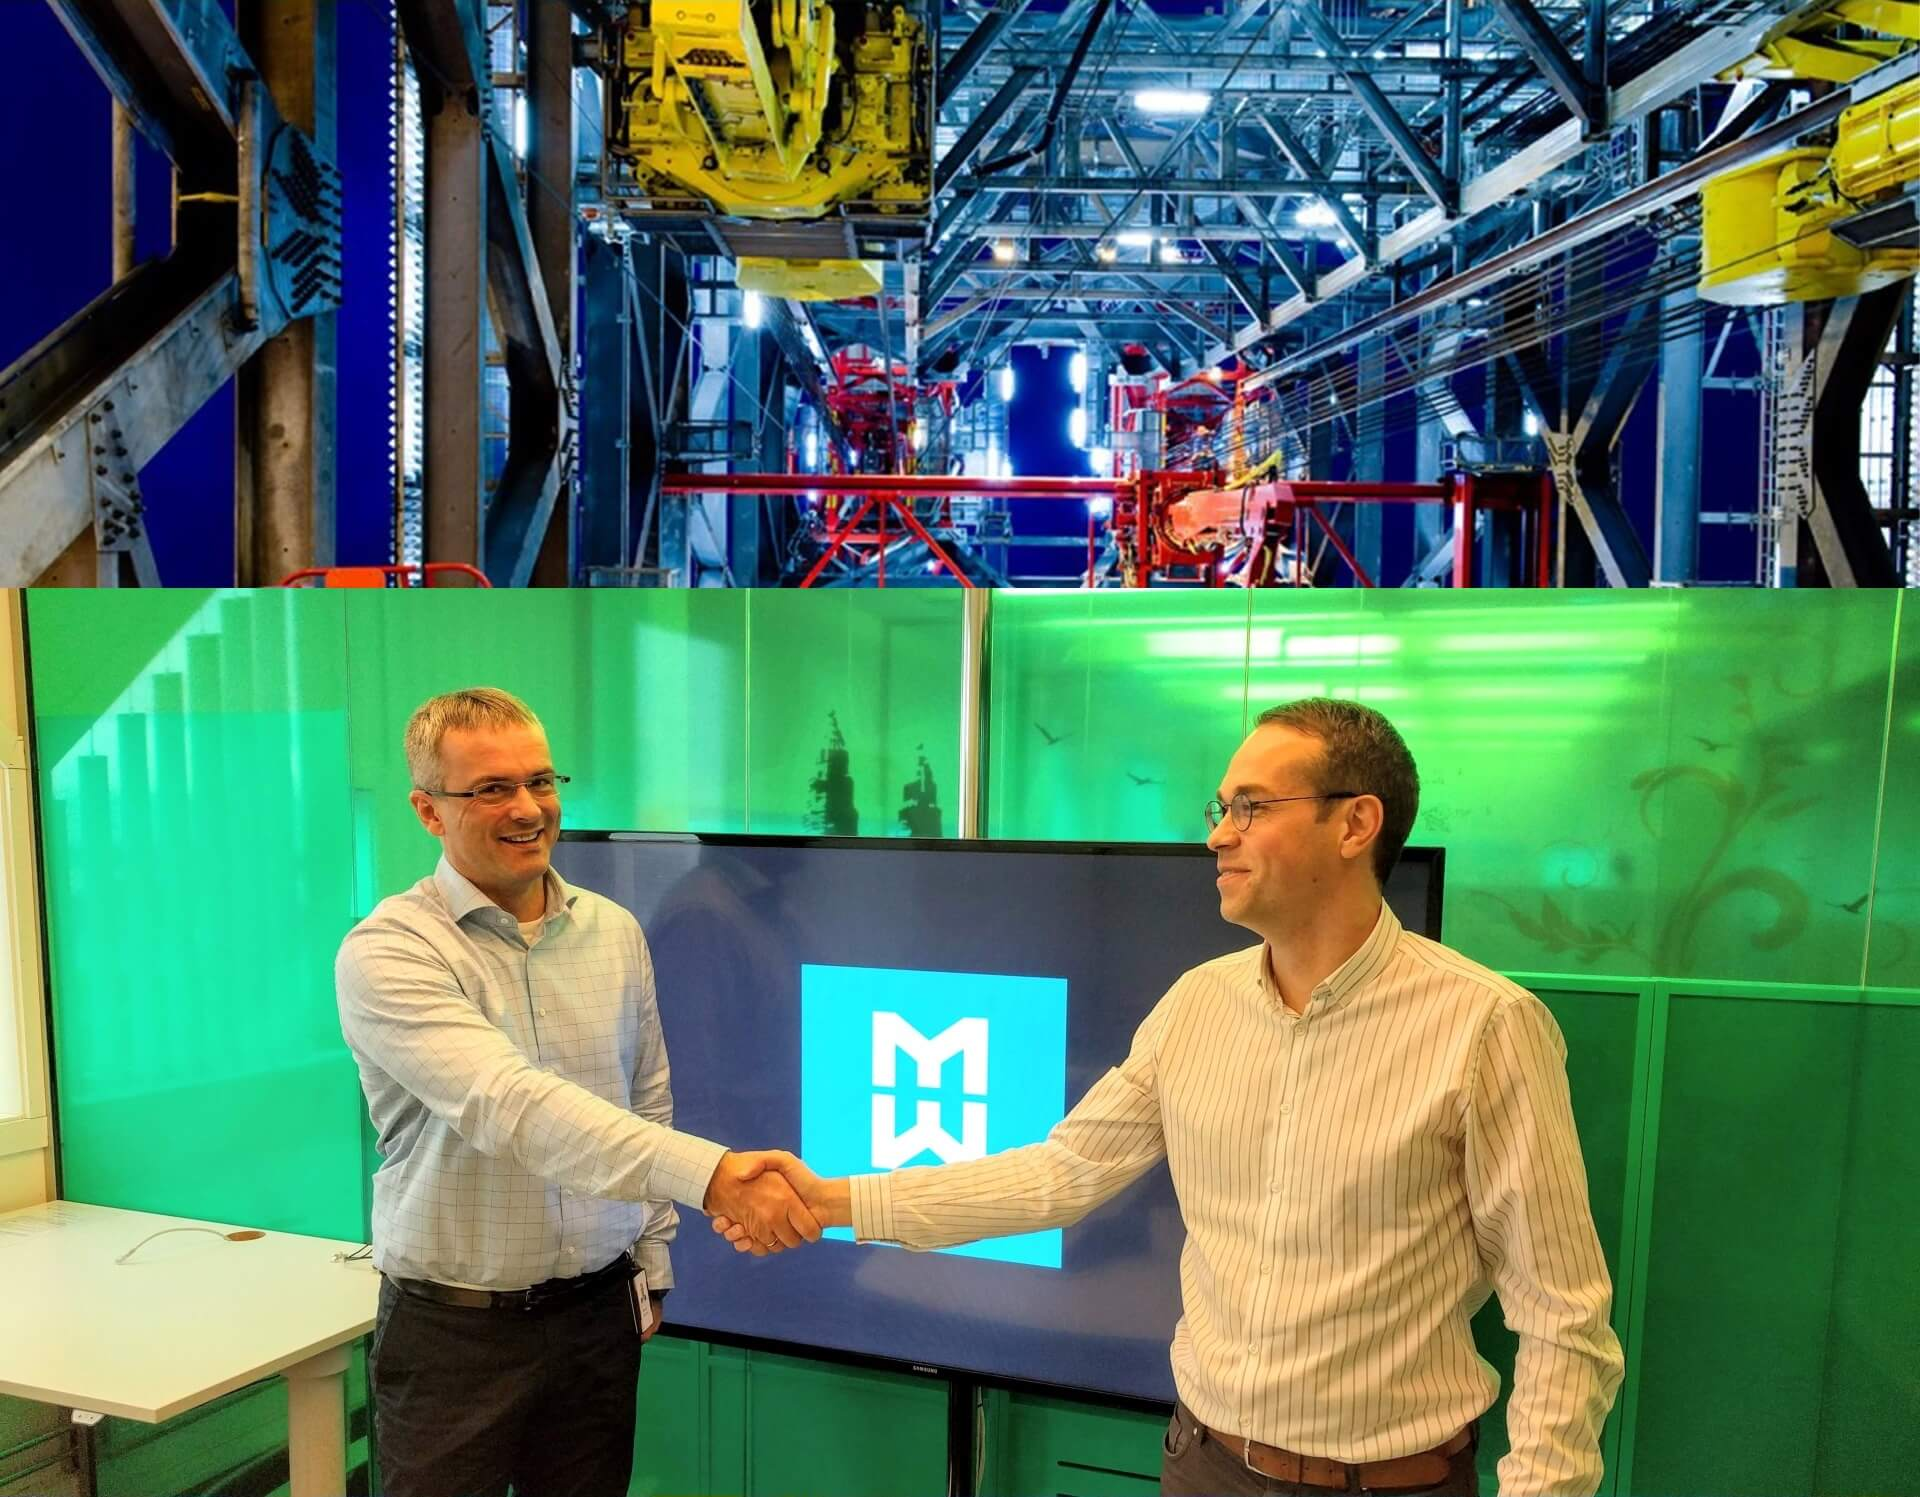 PaleBlue and MHWirth Enter Resource Agreement